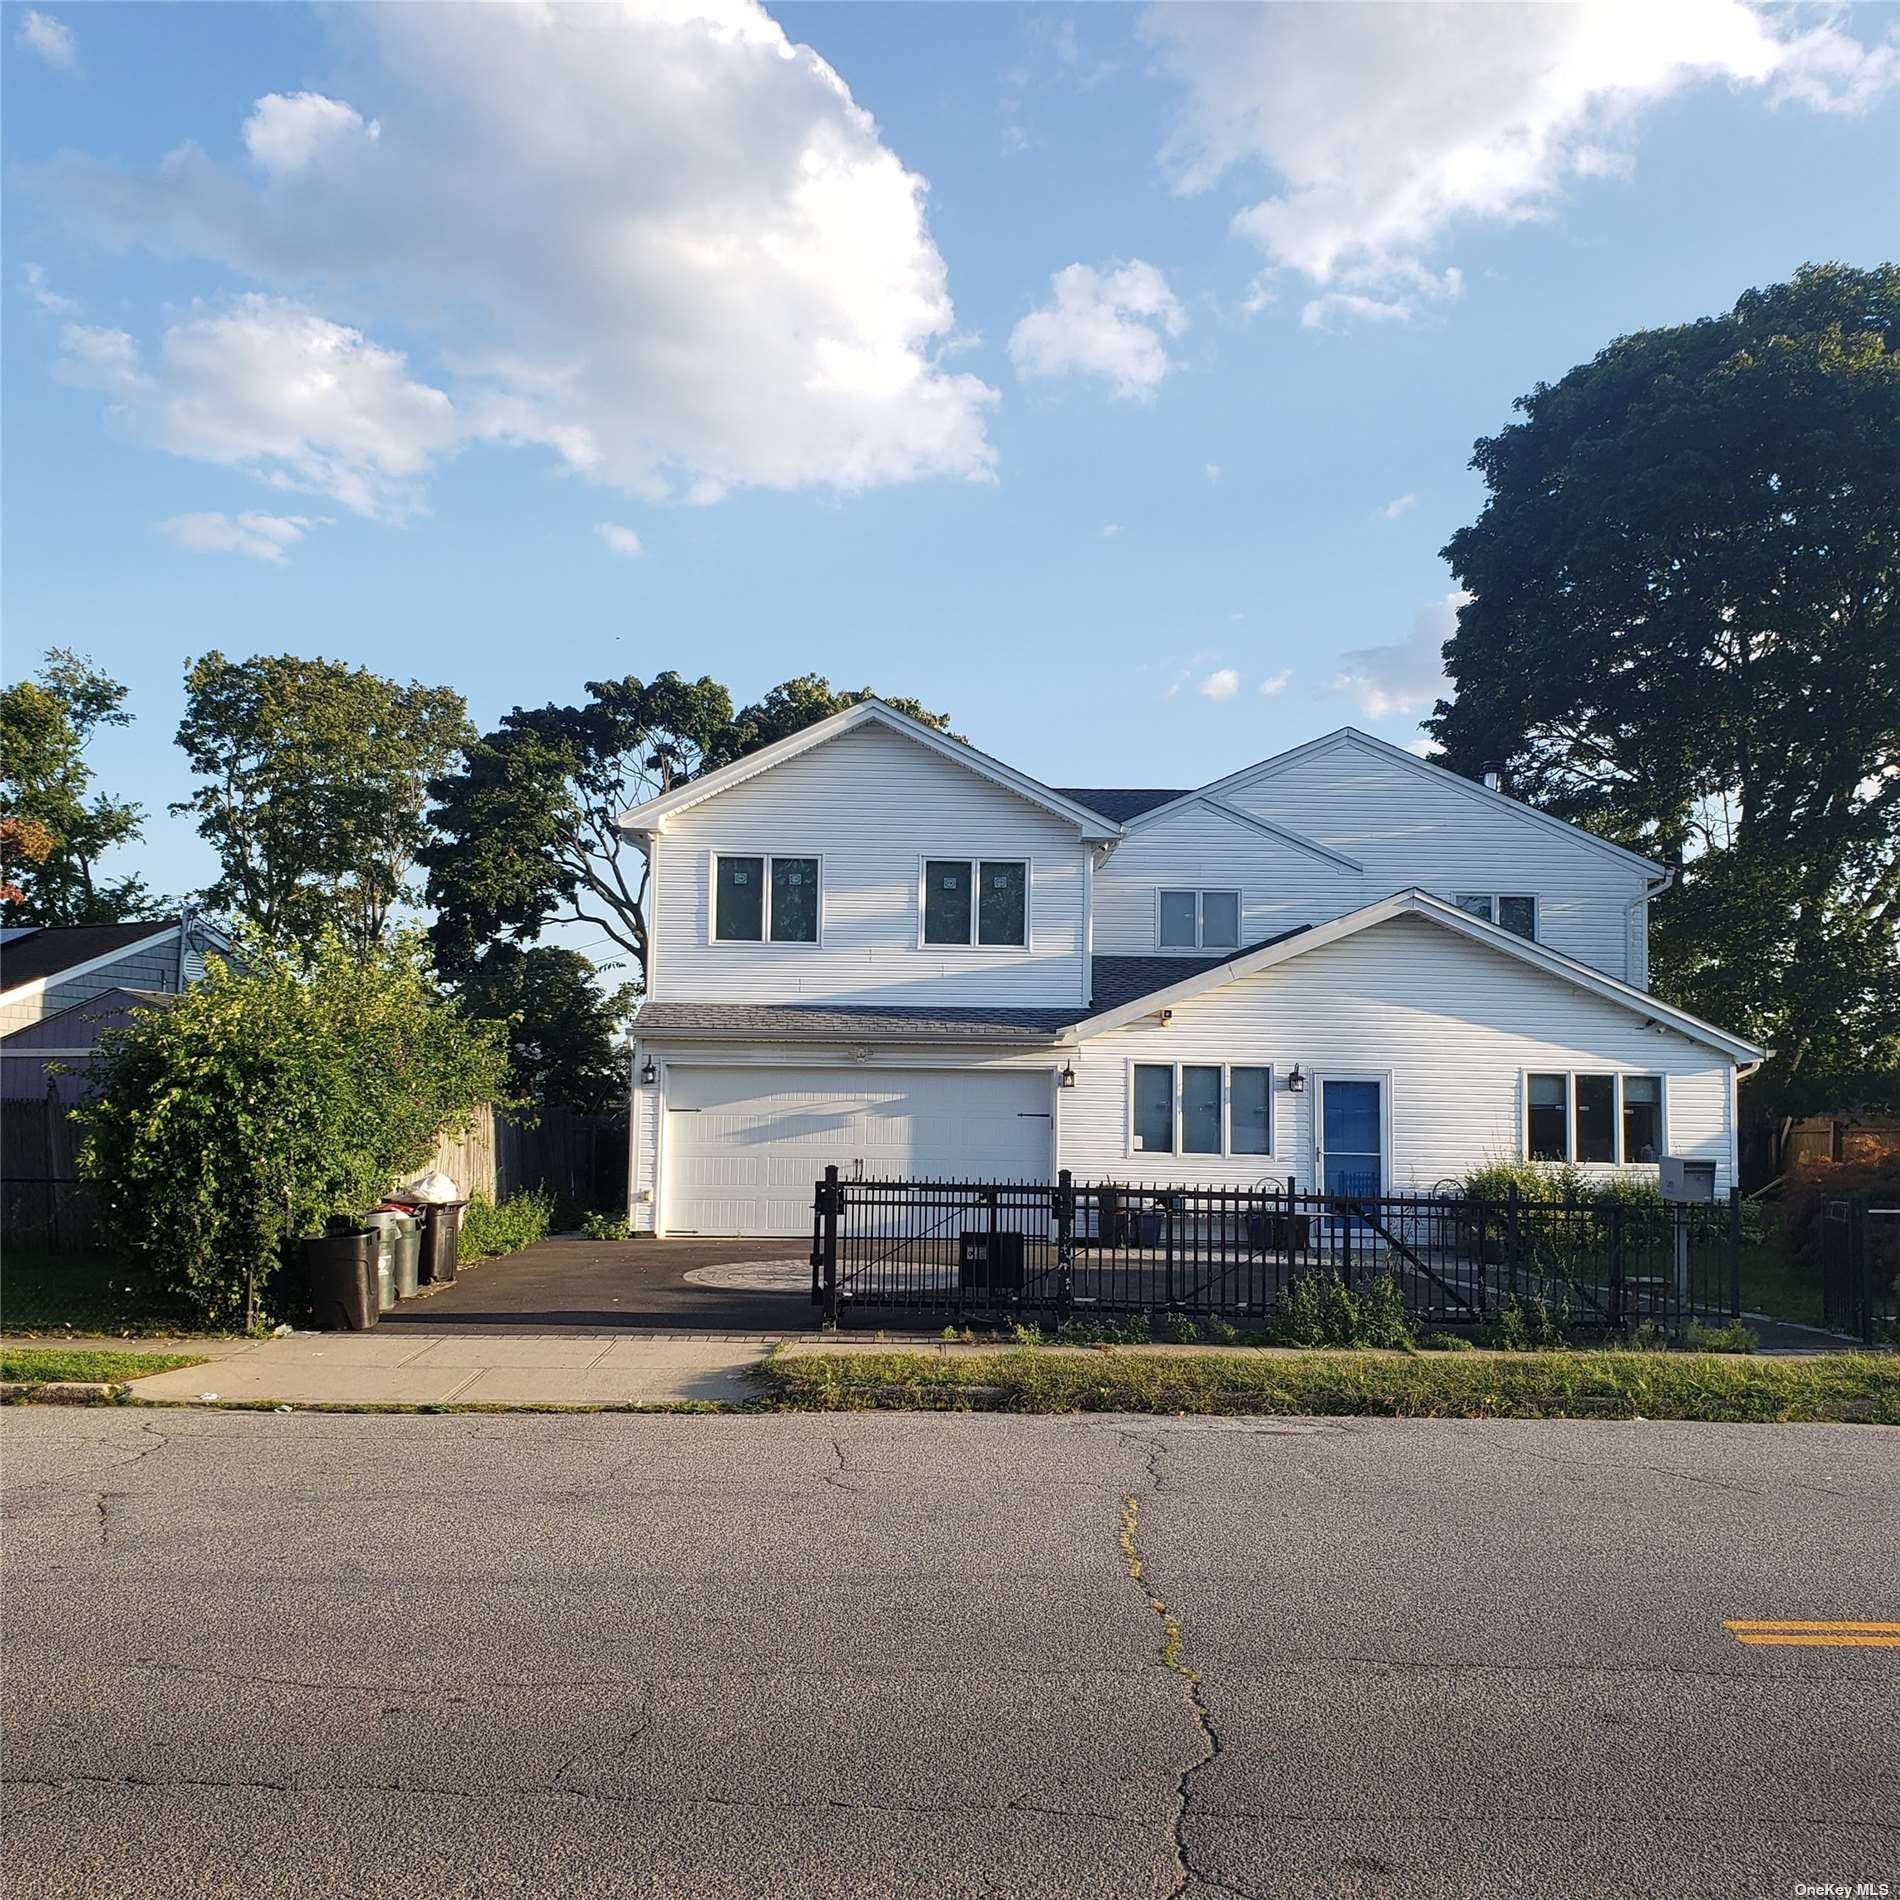 2480 Lawn Drive, East Meadow, NY 11554 - #: 3351518